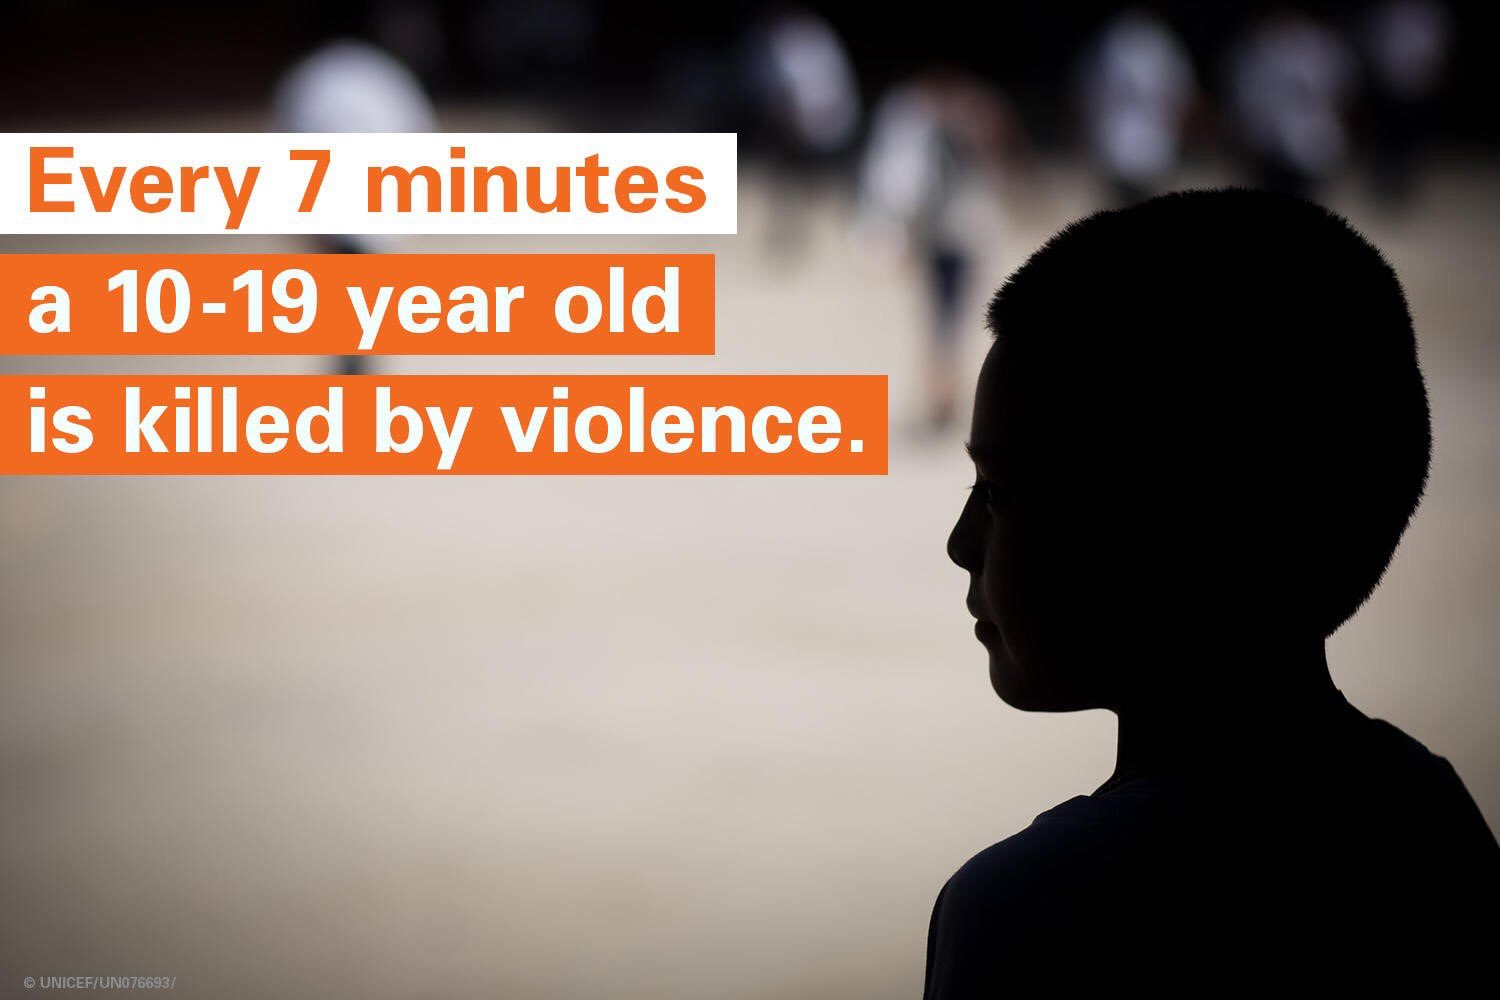 STOP scrolling.   Take a moment.   Imagine all the hopes and dreams lost.  #ENDviolence → https://t.co/xcnchQKdNK https://t.co/nh6thVk6T9